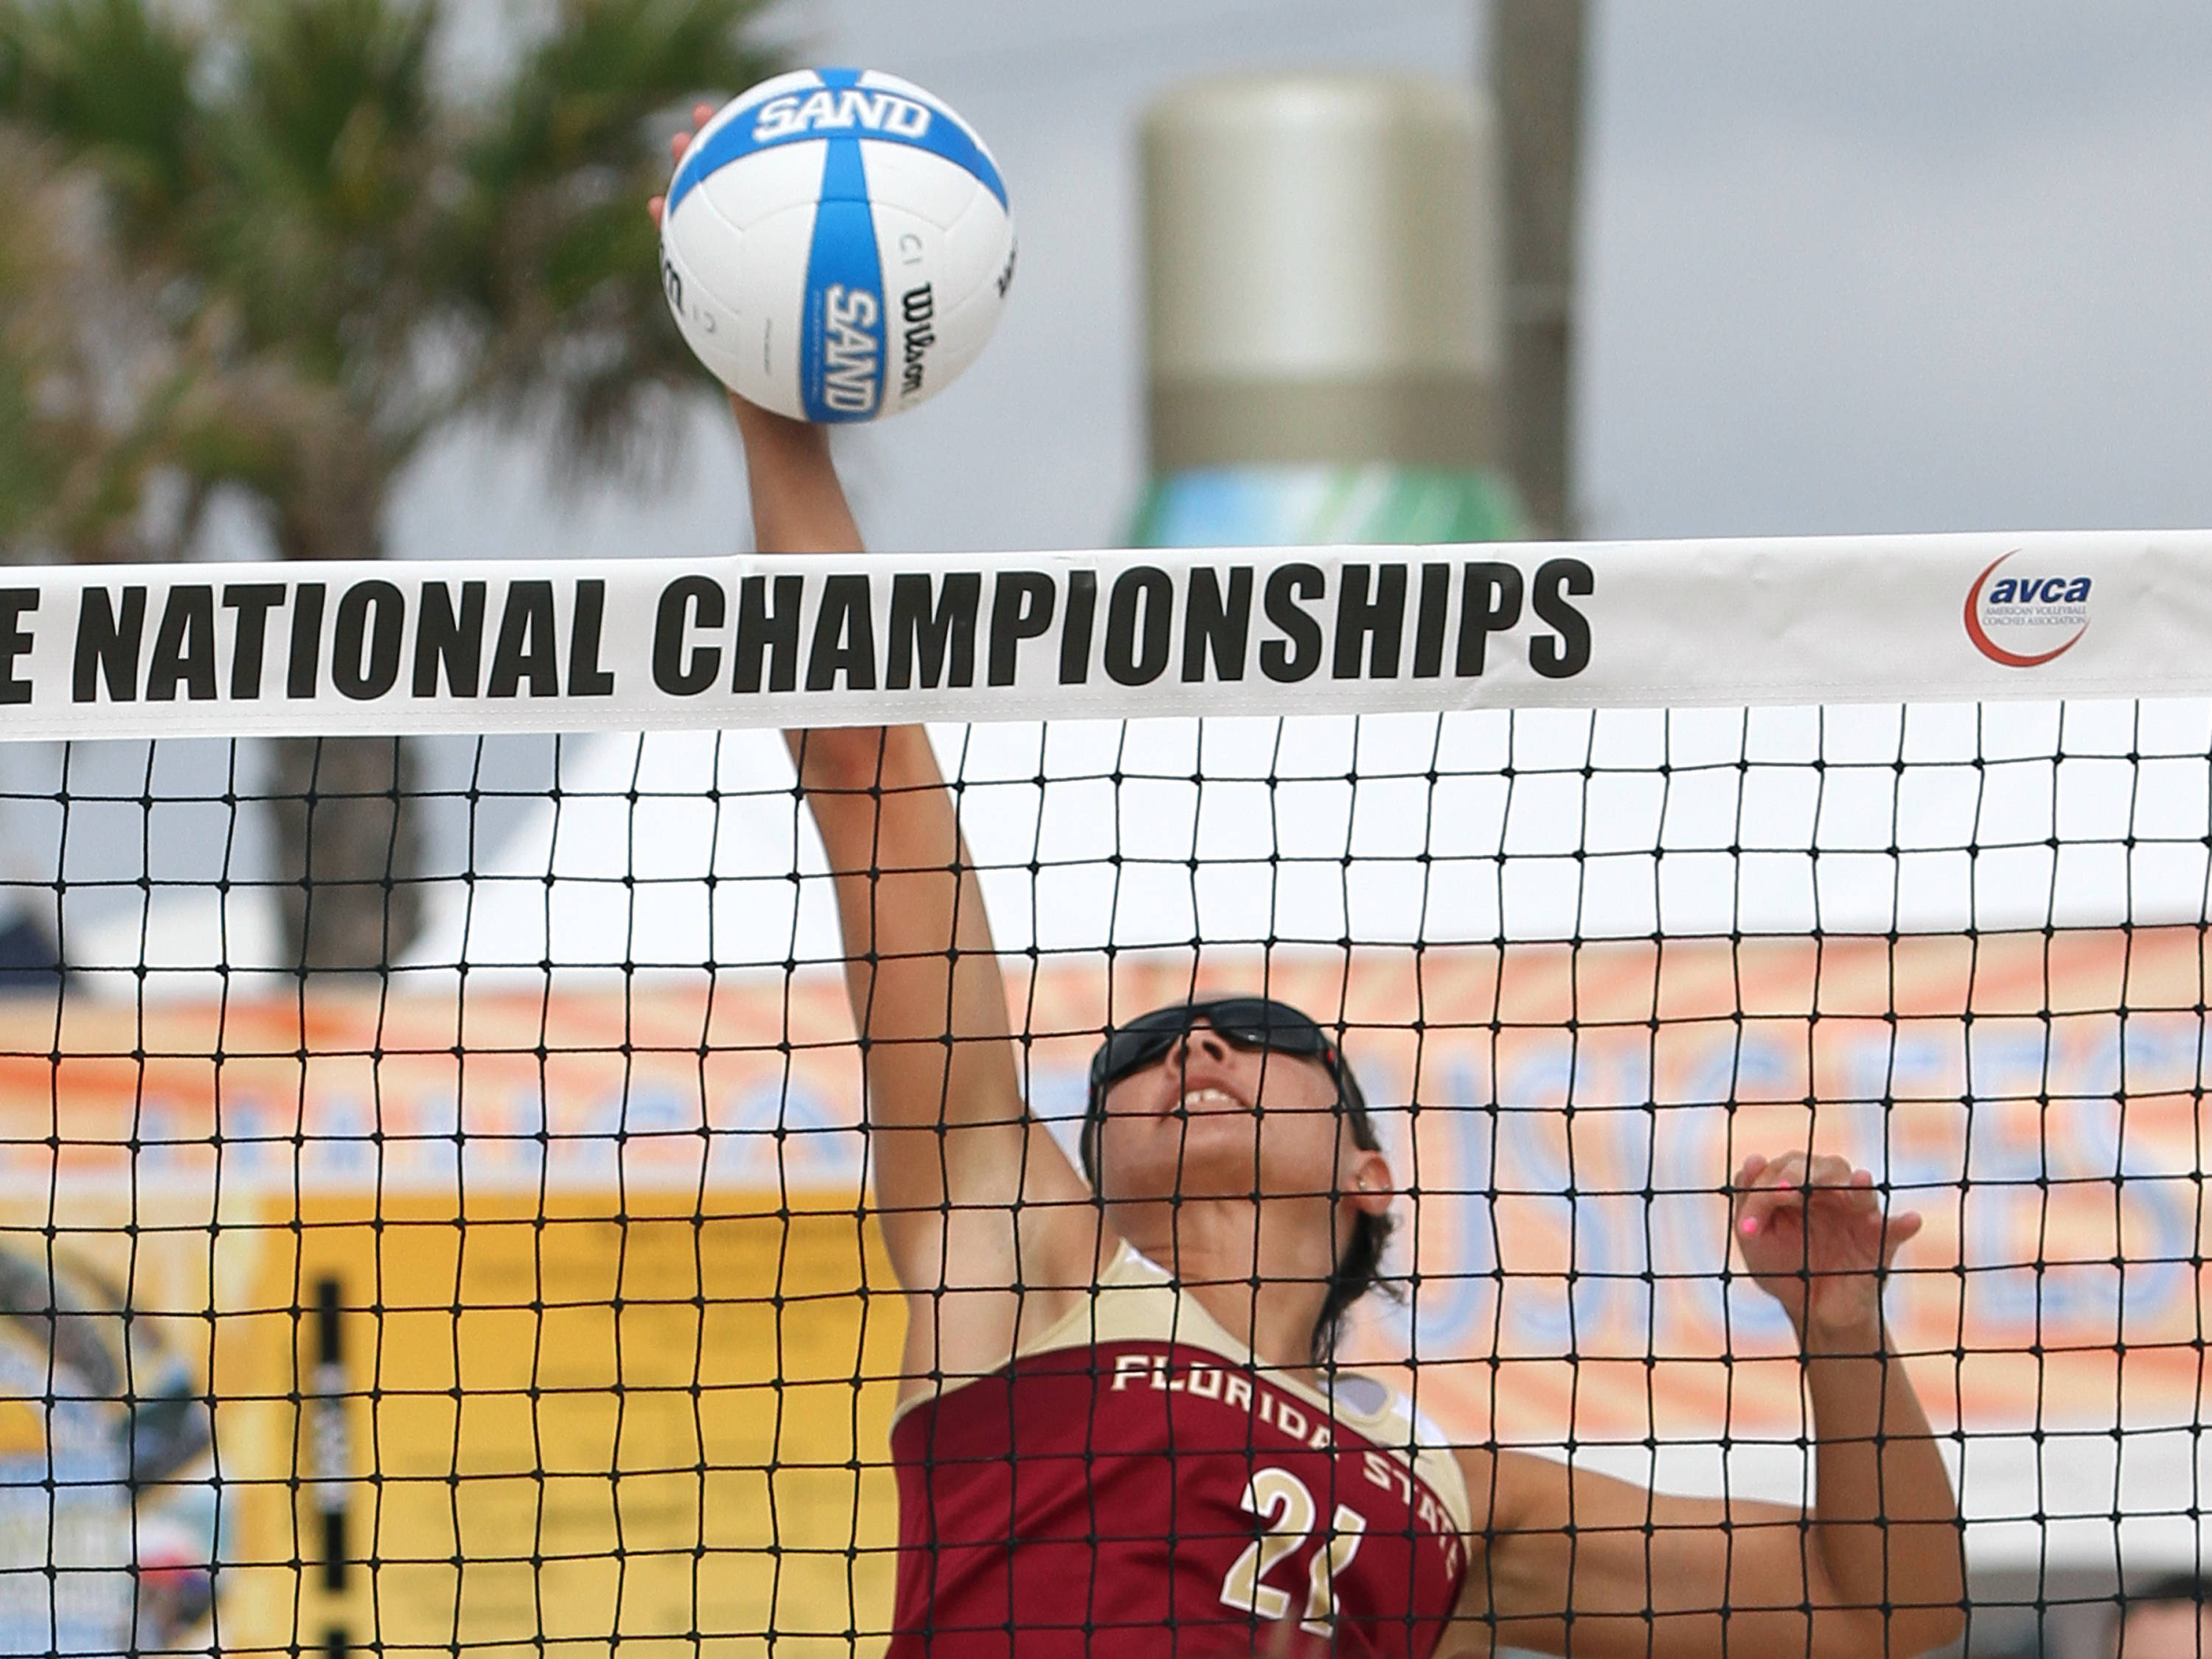 Jace Pardon, (21), AVCA Collegiate Sand Volleyball National Championships,  Gulf Shores, Alabama,05/03/13 . (Photo by Steve Musco)